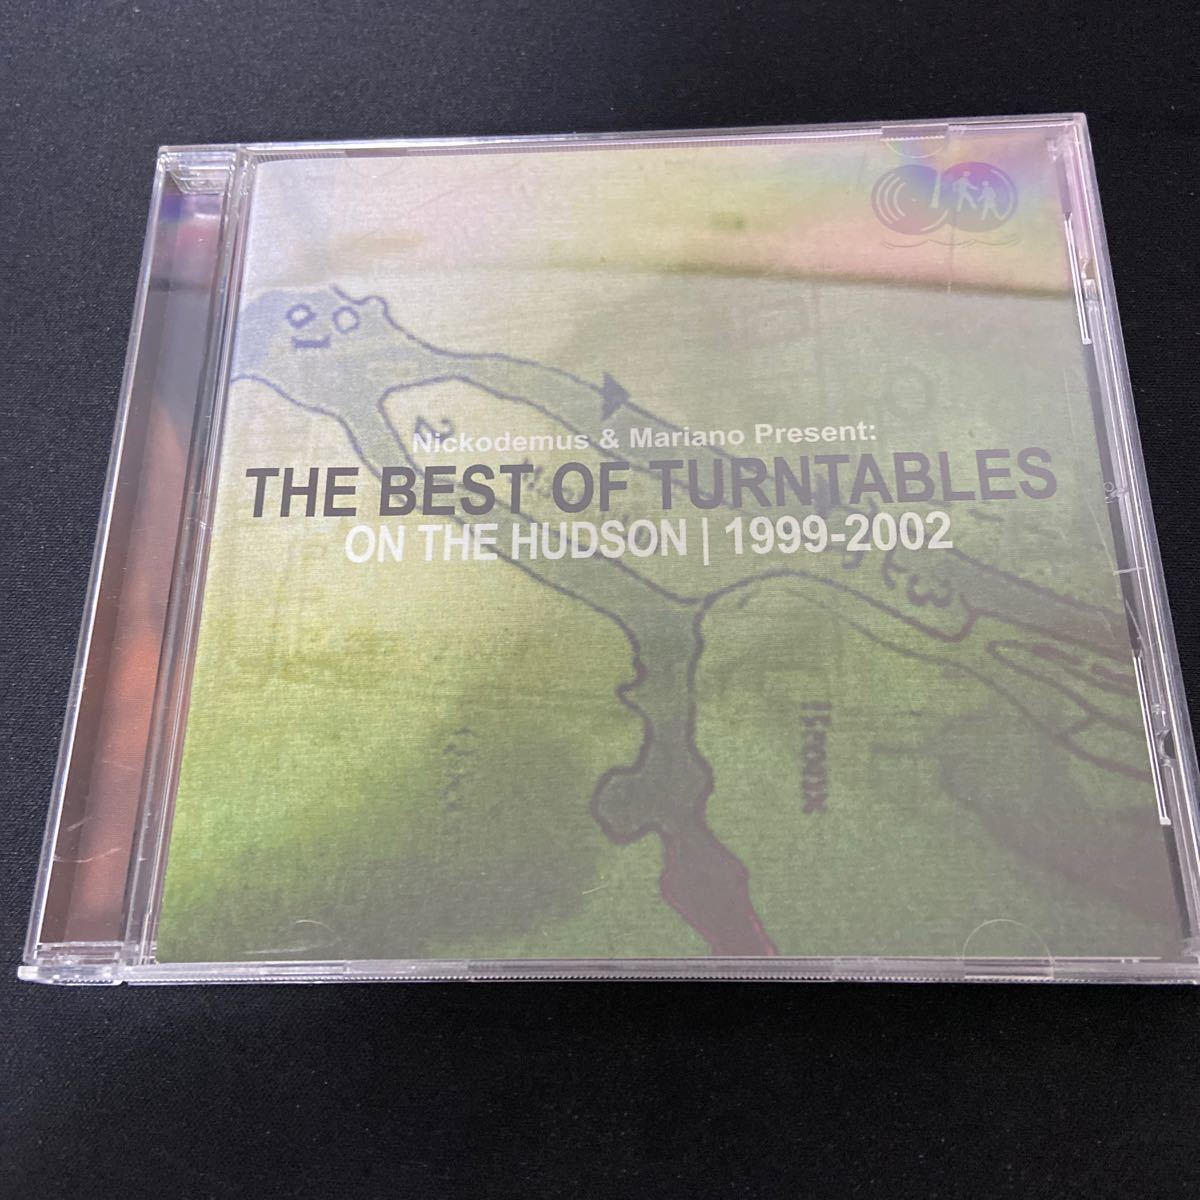 THE BEST OF TURNTABLES ON THE HUDSON 1999-2002